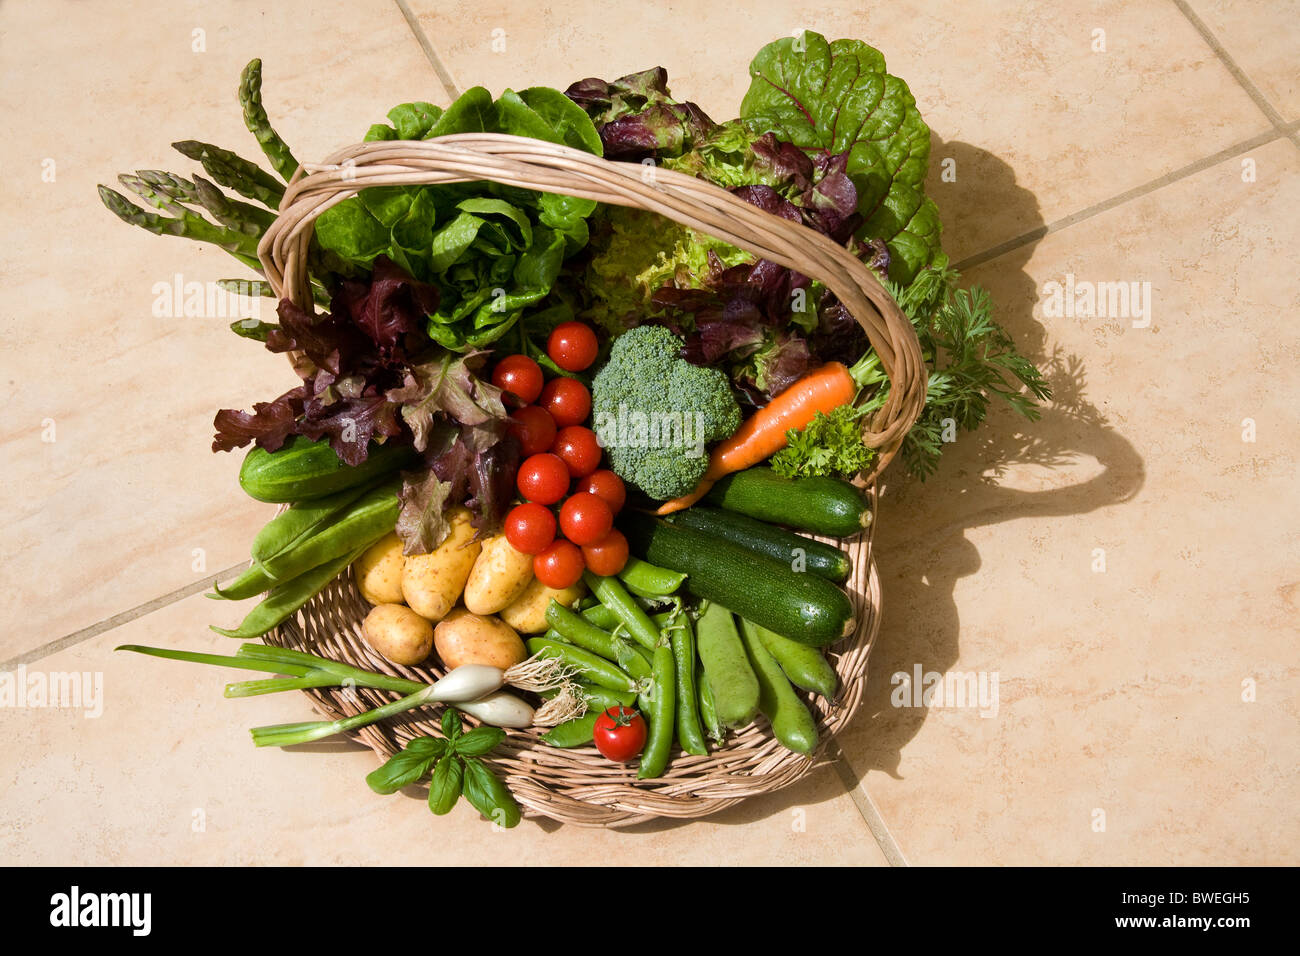 Delicious locally grown freshly picket British spring and summer vegetables in a basket on a tile floor in Weald - Stock Image